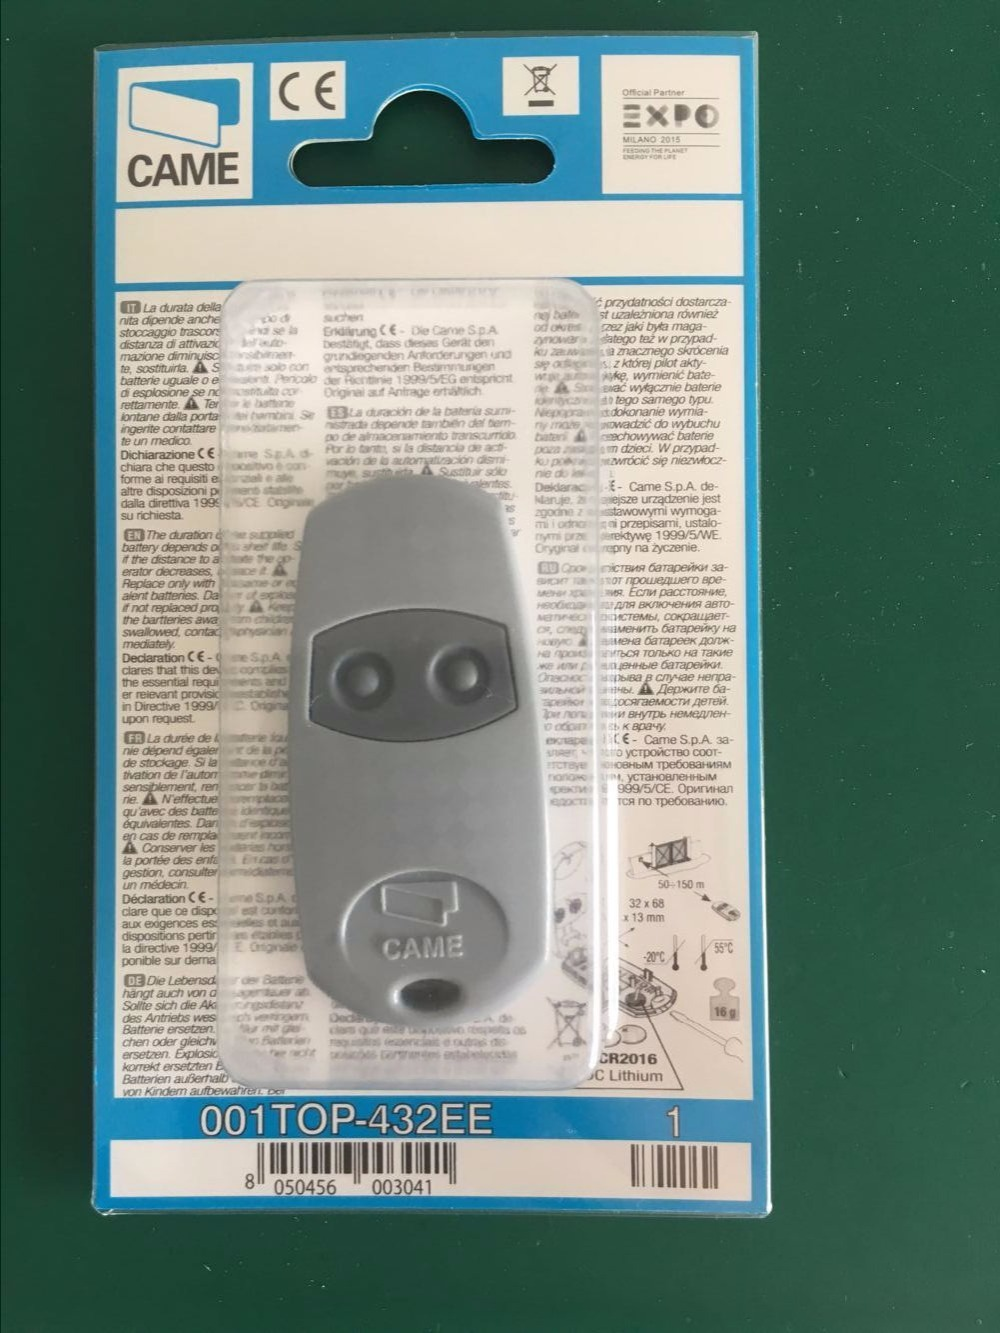 Duplicator Copy CAME <font><b>remote</b></font> <font><b>control</b></font> TOP 432EV TOP-432NA TOP432NA With Battery For Universal <font><b>Garage</b></font> <font><b>Door</b></font> Gate Key Fob 433.92 <font><b>Mhz</b></font> image